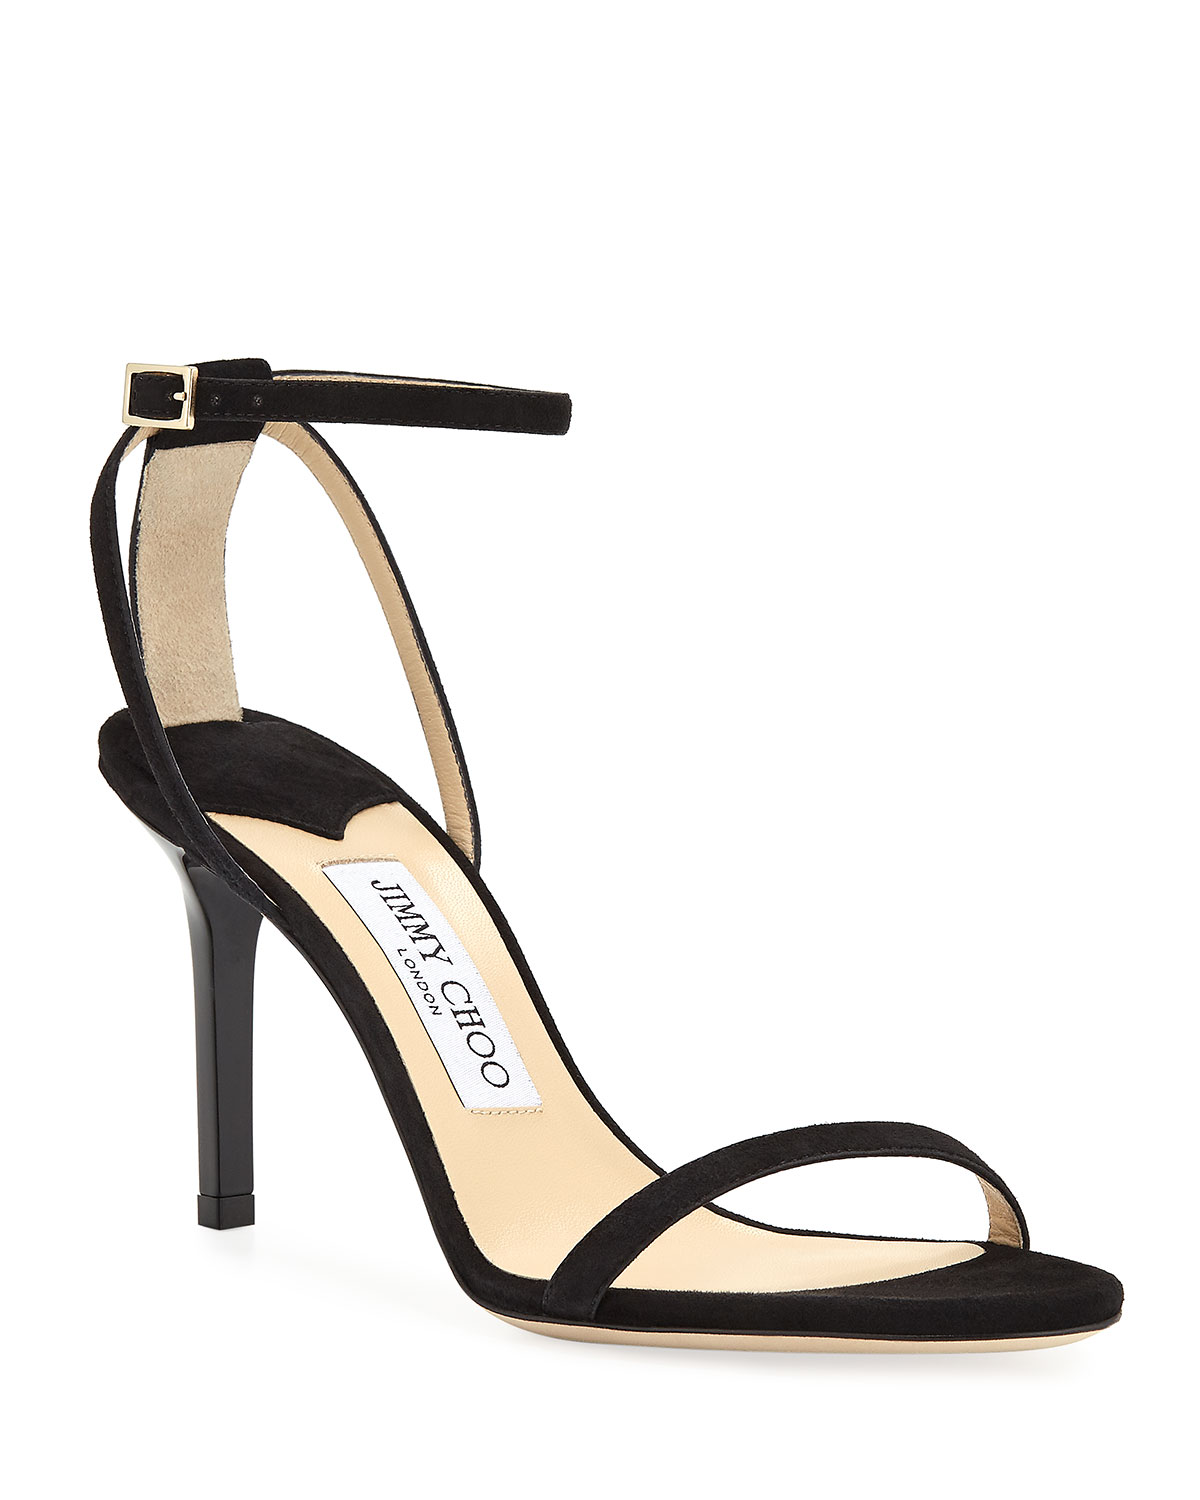 Minny Suede Ankle Sandals